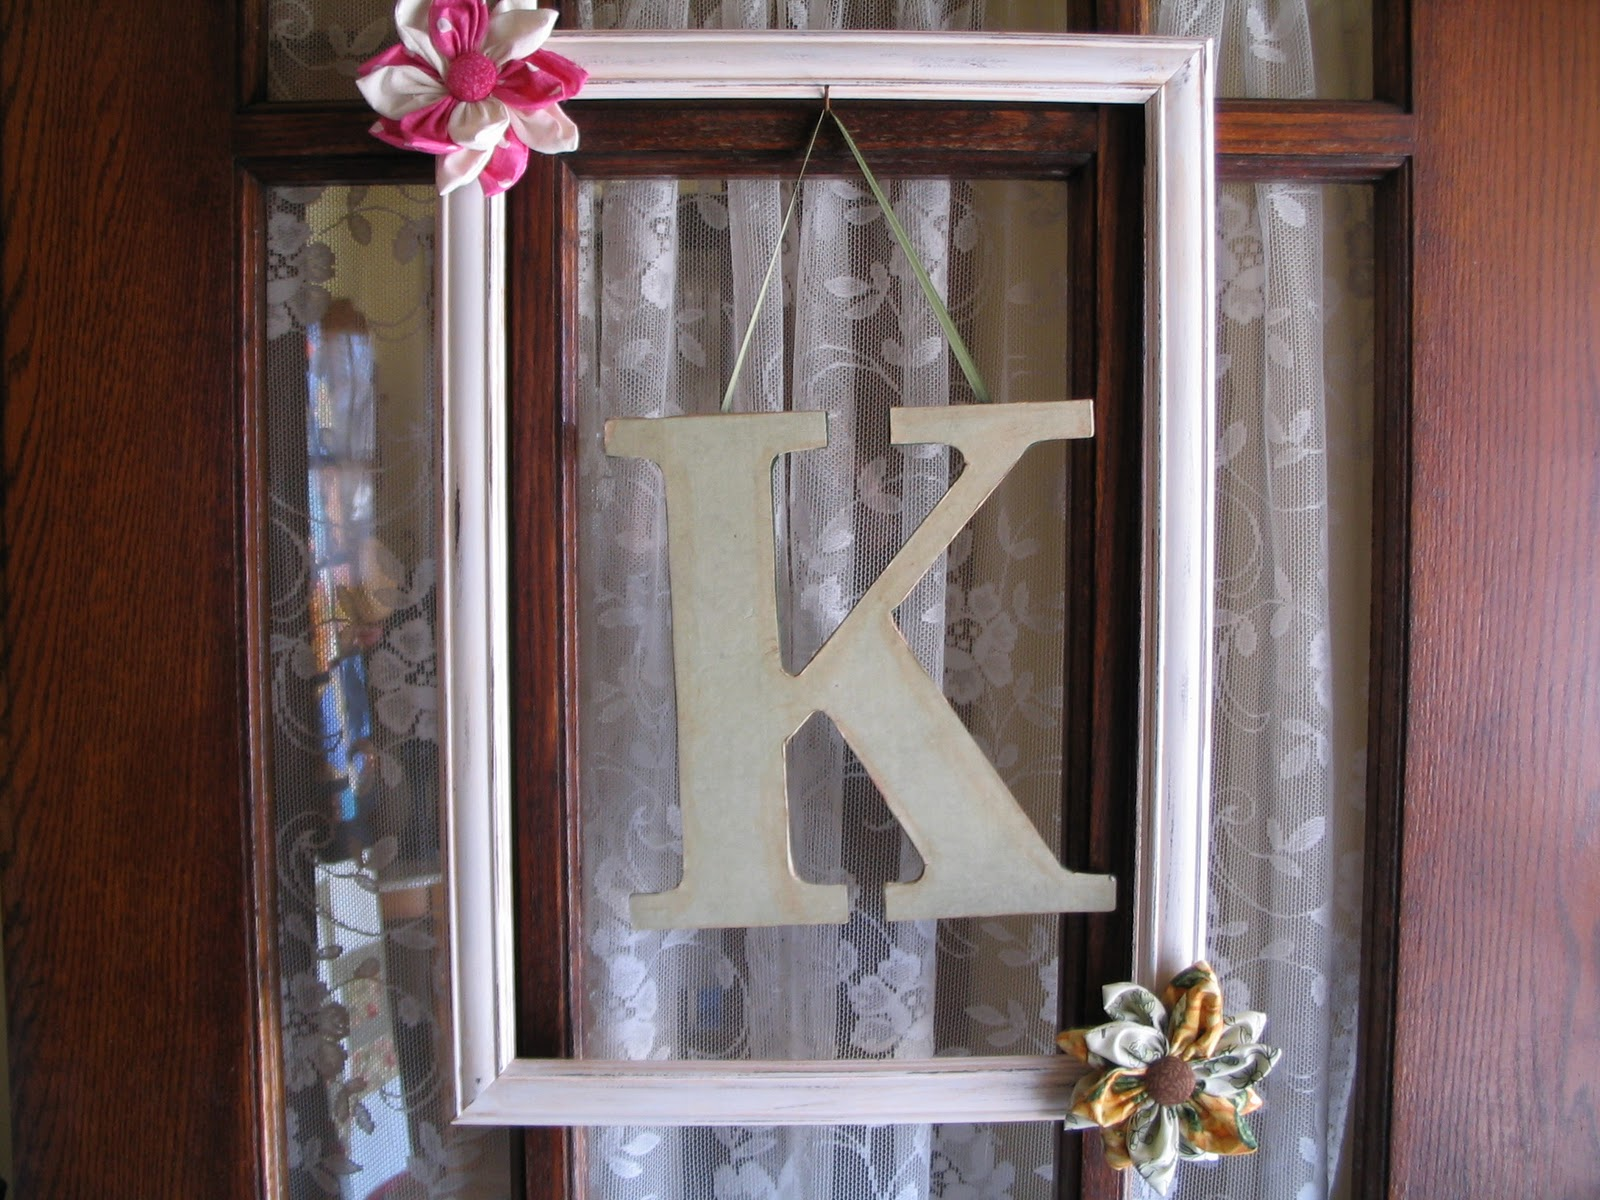 It is just a Goodwill frame that I painted off white and added the title=